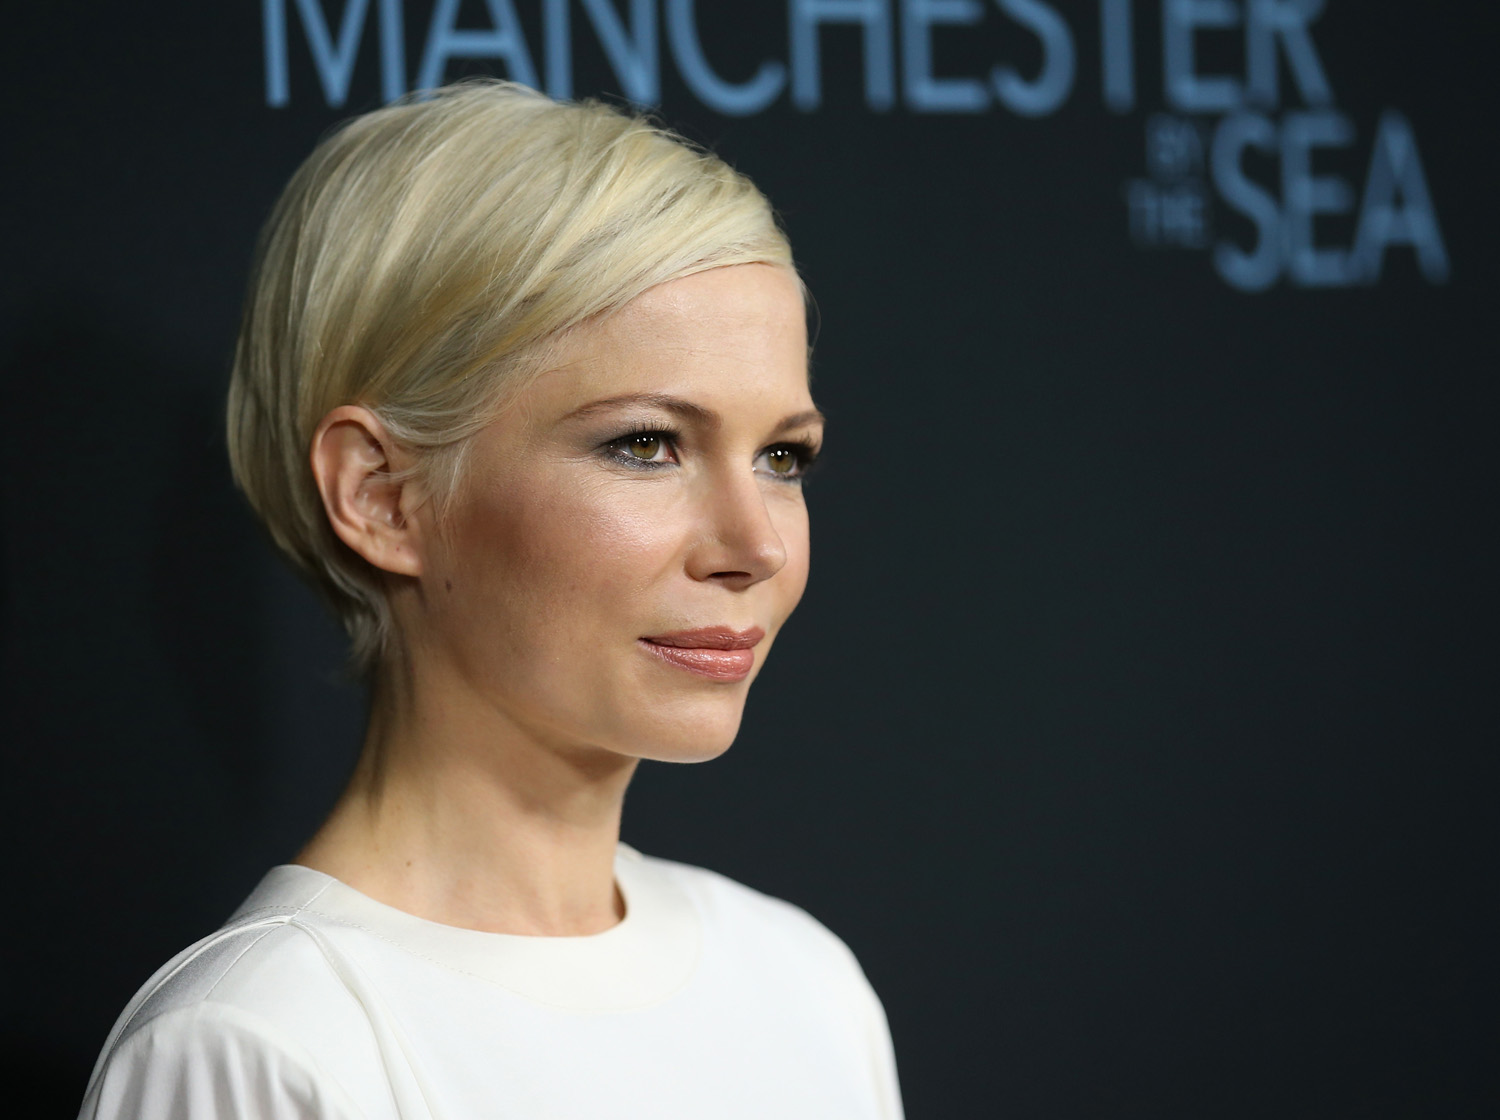 """BEVERLY HILLS, CA - NOVEMBER 14: Actress Michelle Williams attends the premiere of Amazon Studios' """"Manchester By The Sea"""" at Samuel Goldwyn Theater on November 14, 2016 in Beverly Hills, California. (Photo by Phillip Faraone/Getty Images)"""